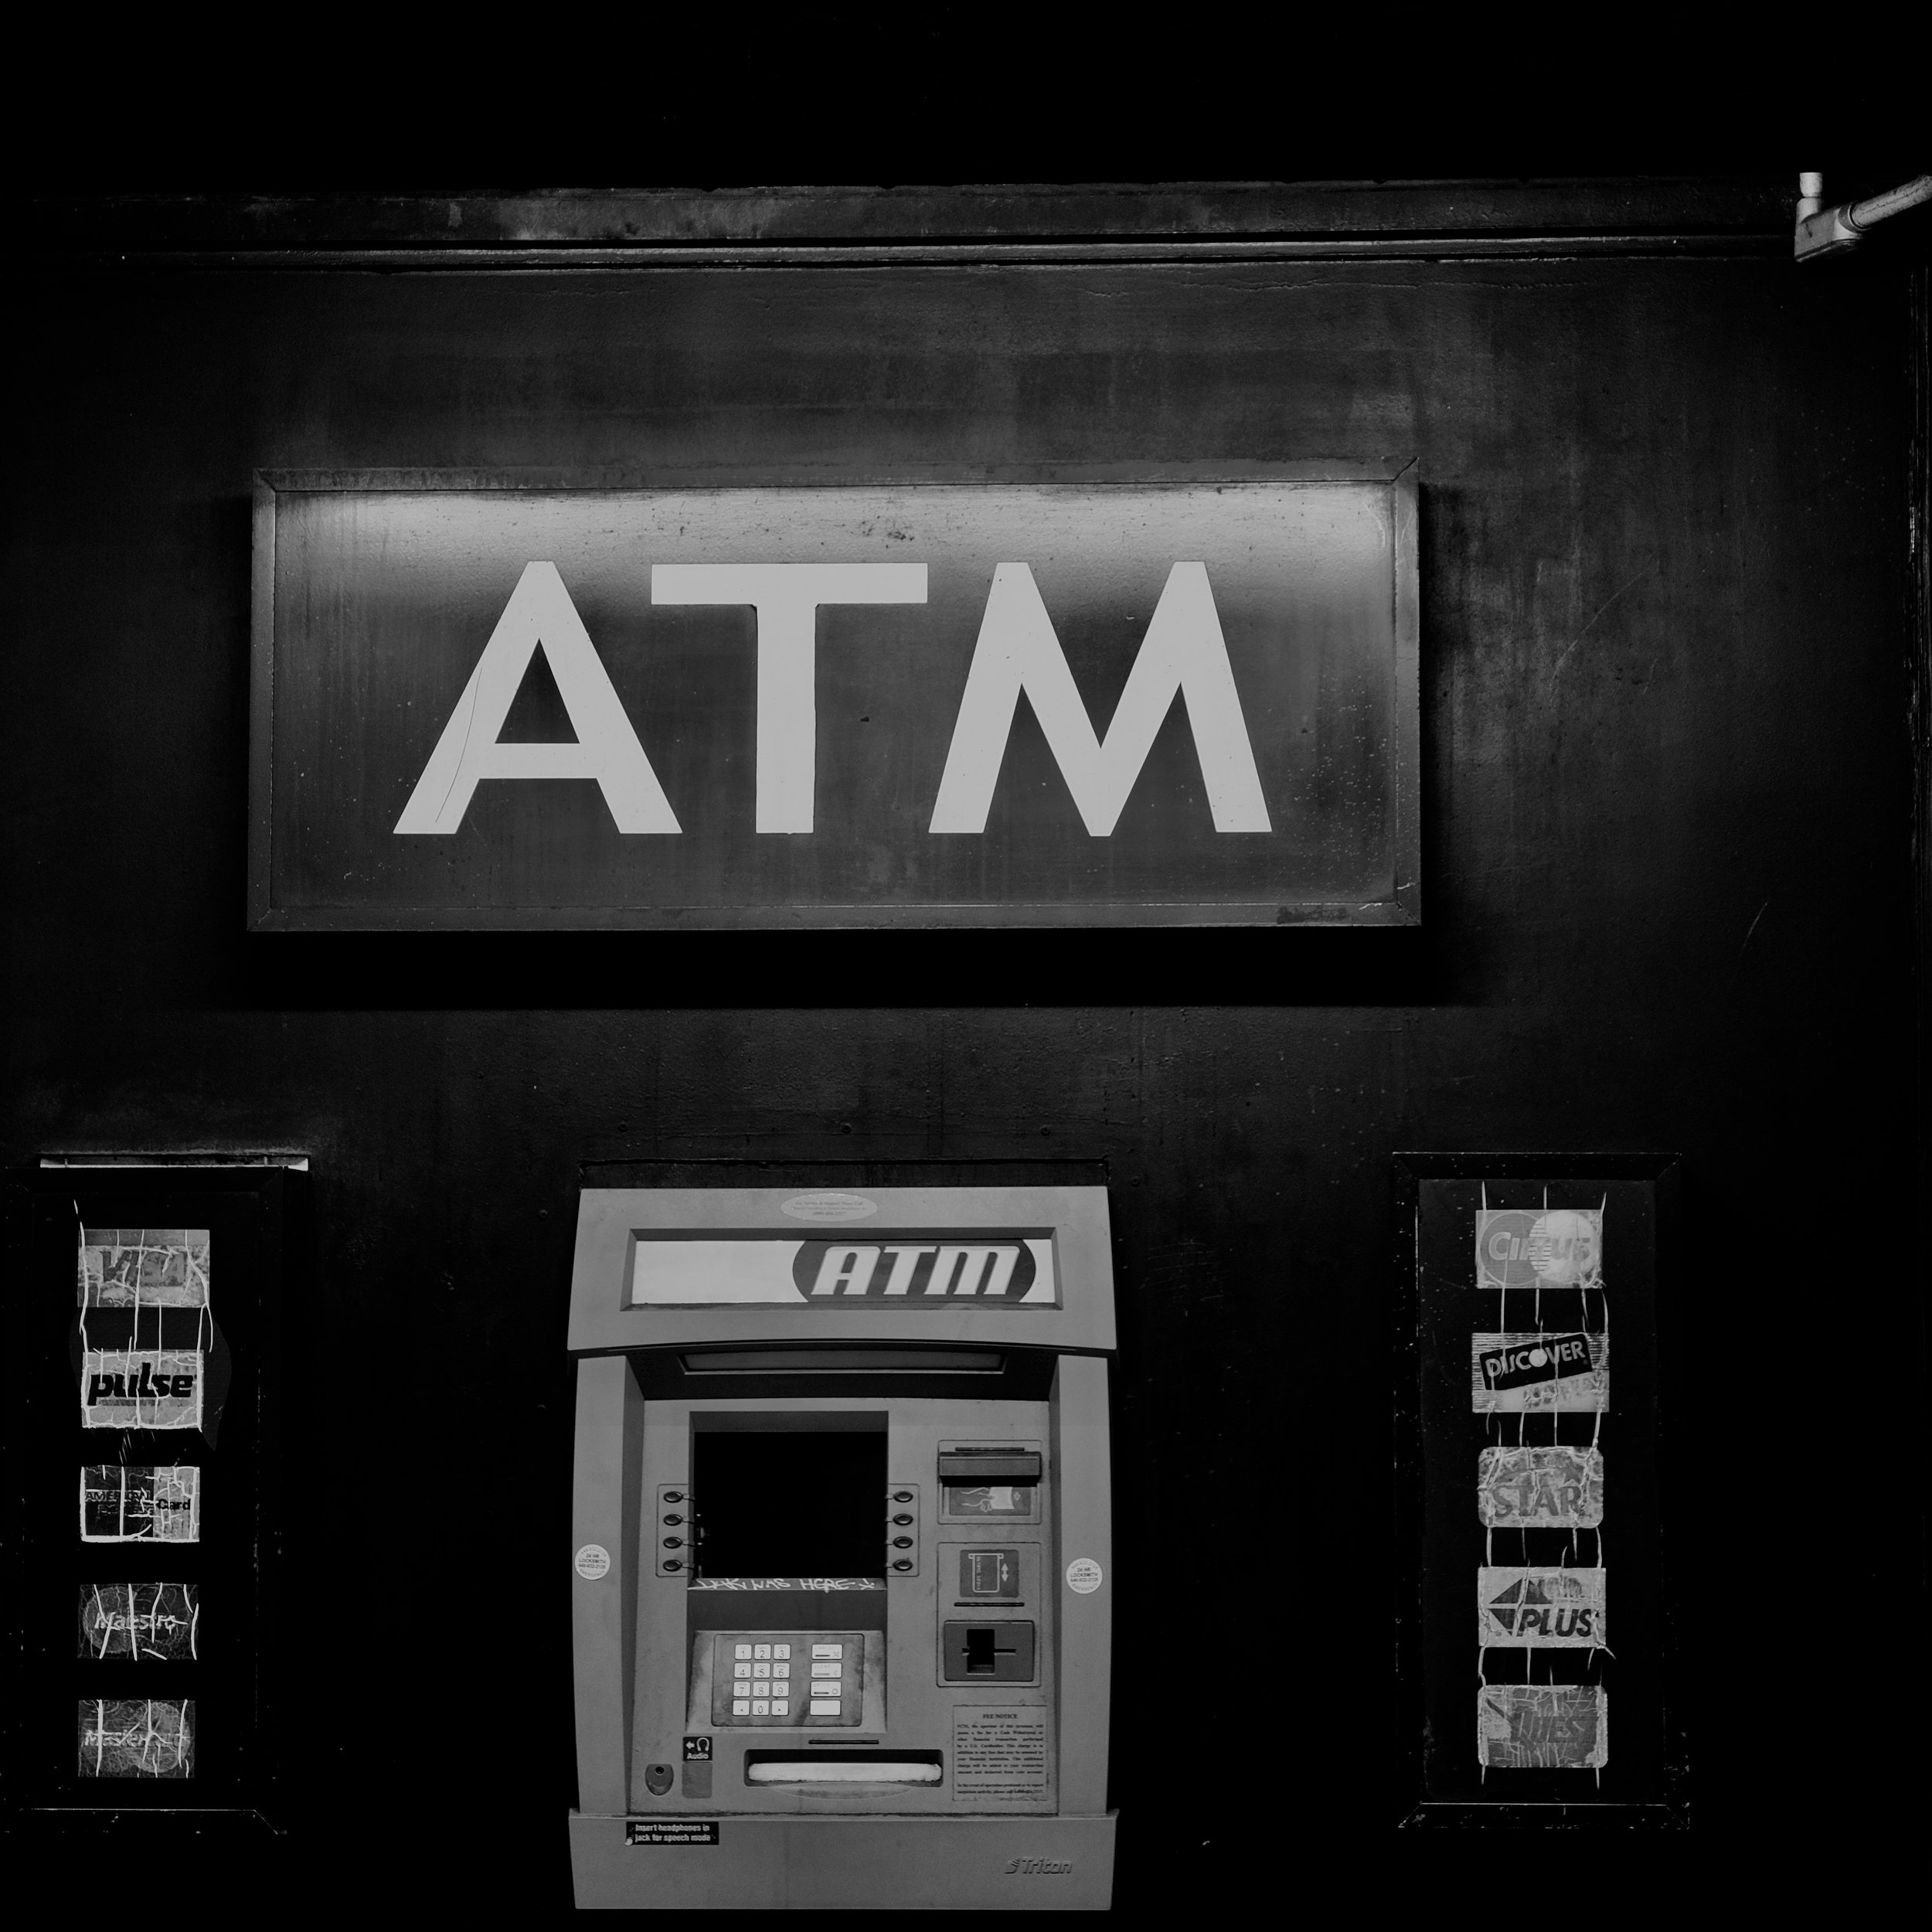 ATMs are becoming an aging relic in the age of instant credit card transactions and Apply Pay.